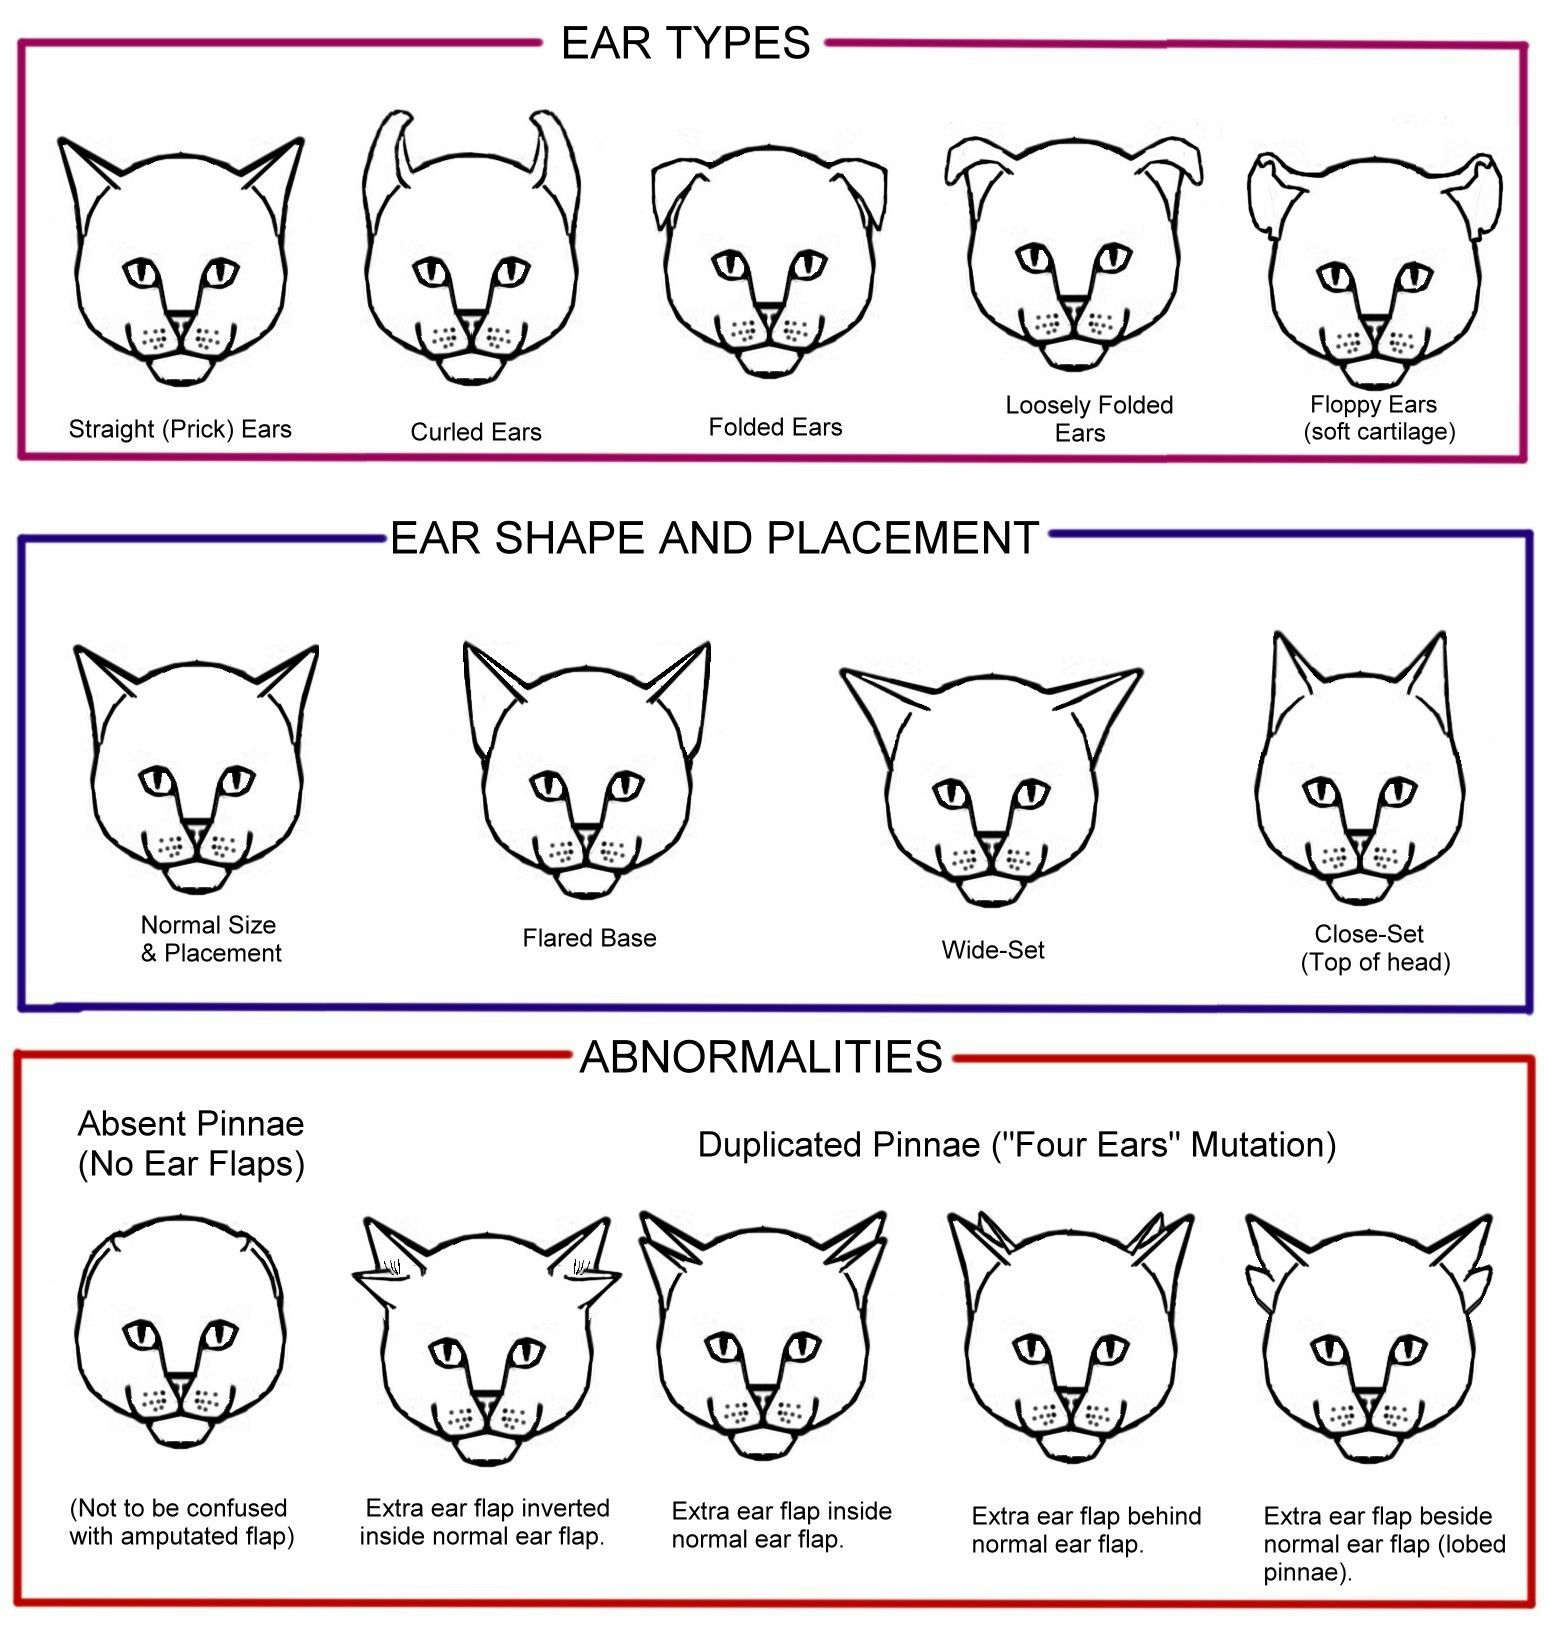 CURLED, CURVED AND FOLDED EAR CATS Miau! Pinterest